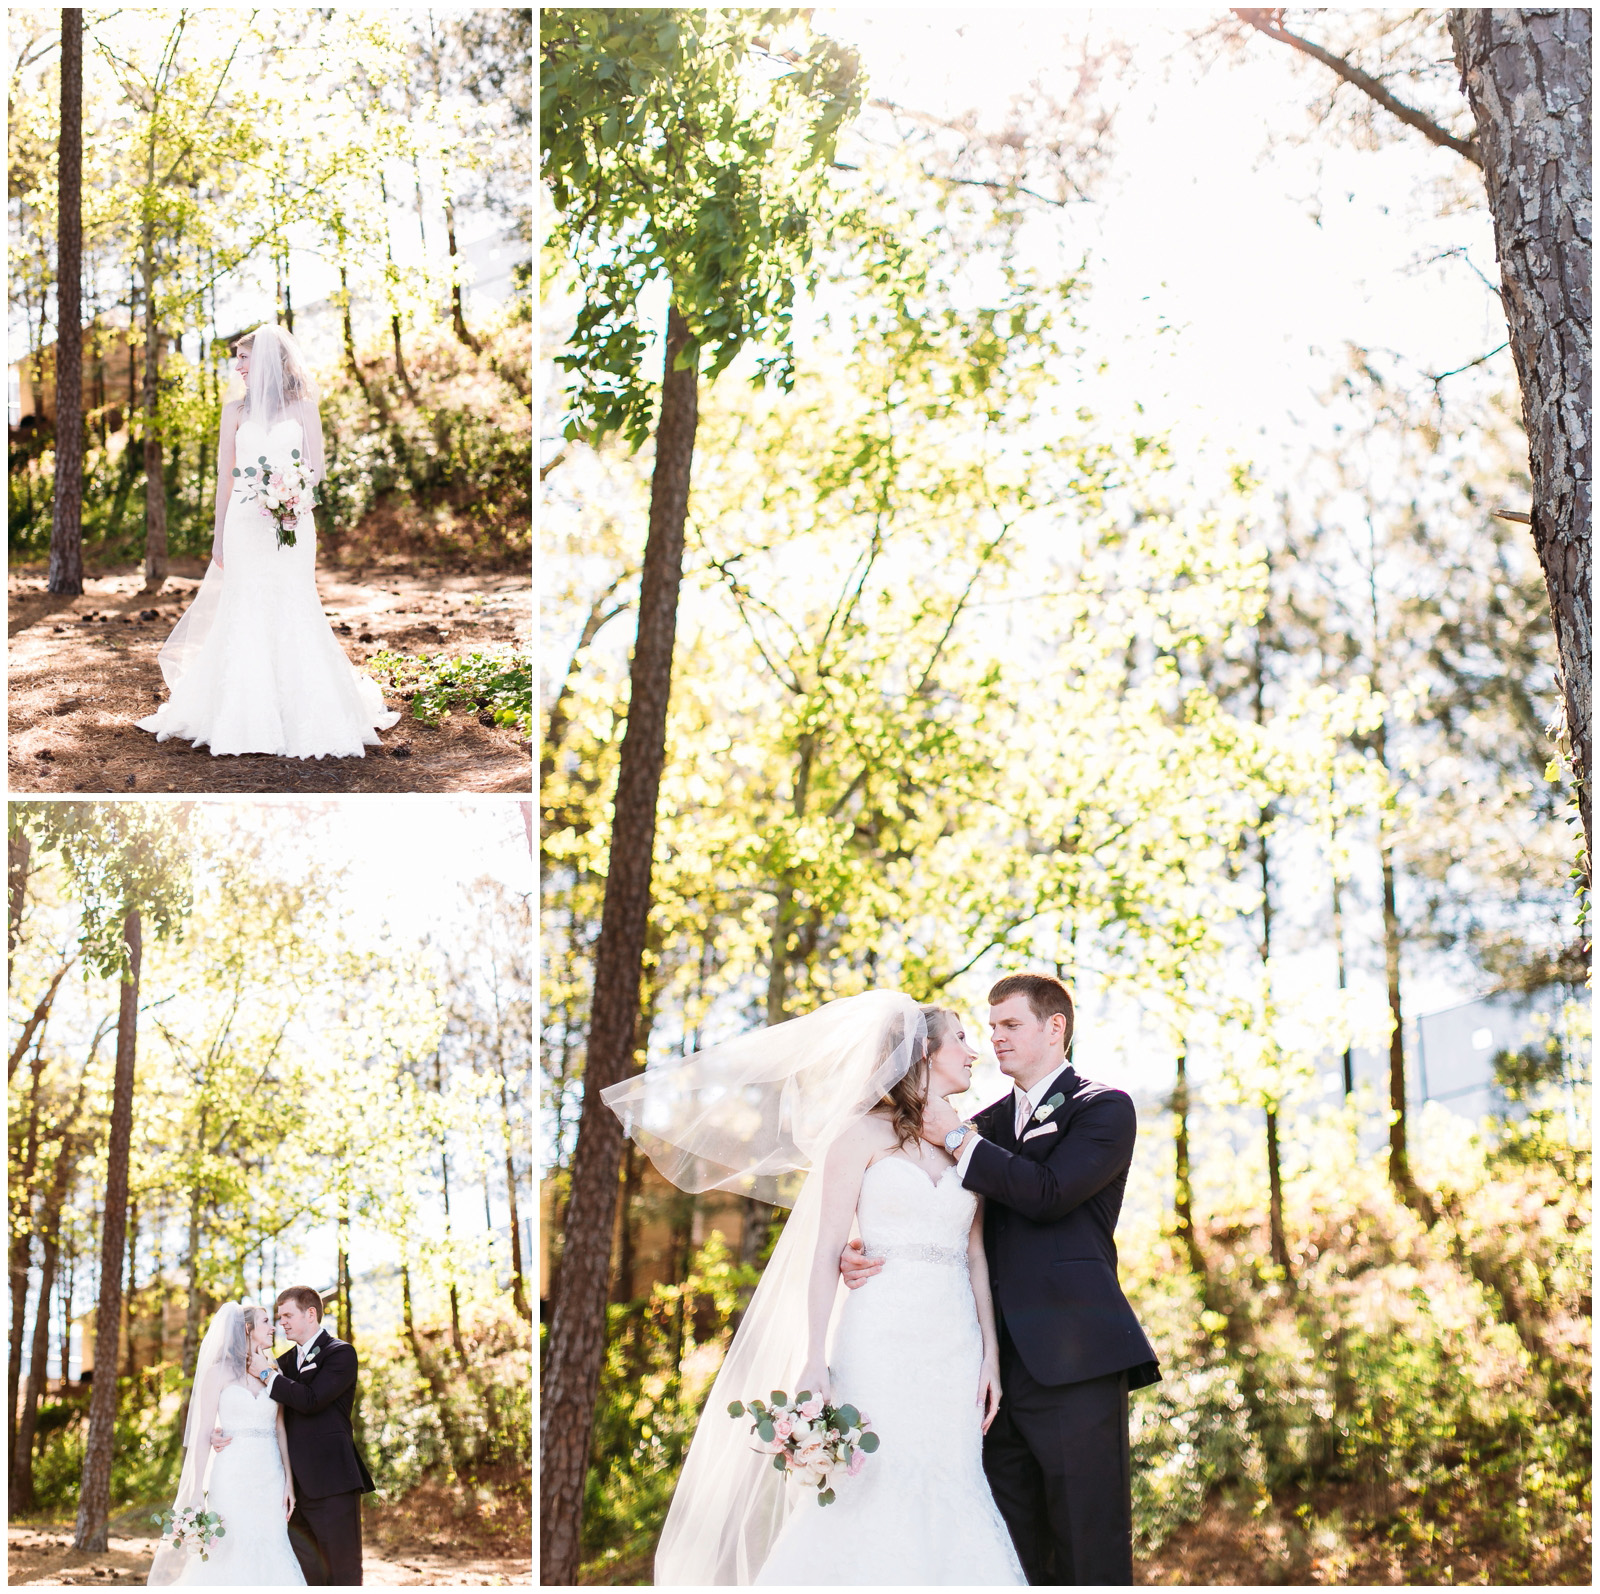 Morgan & Kyle_RoswellWedding_ArdentStory_0018